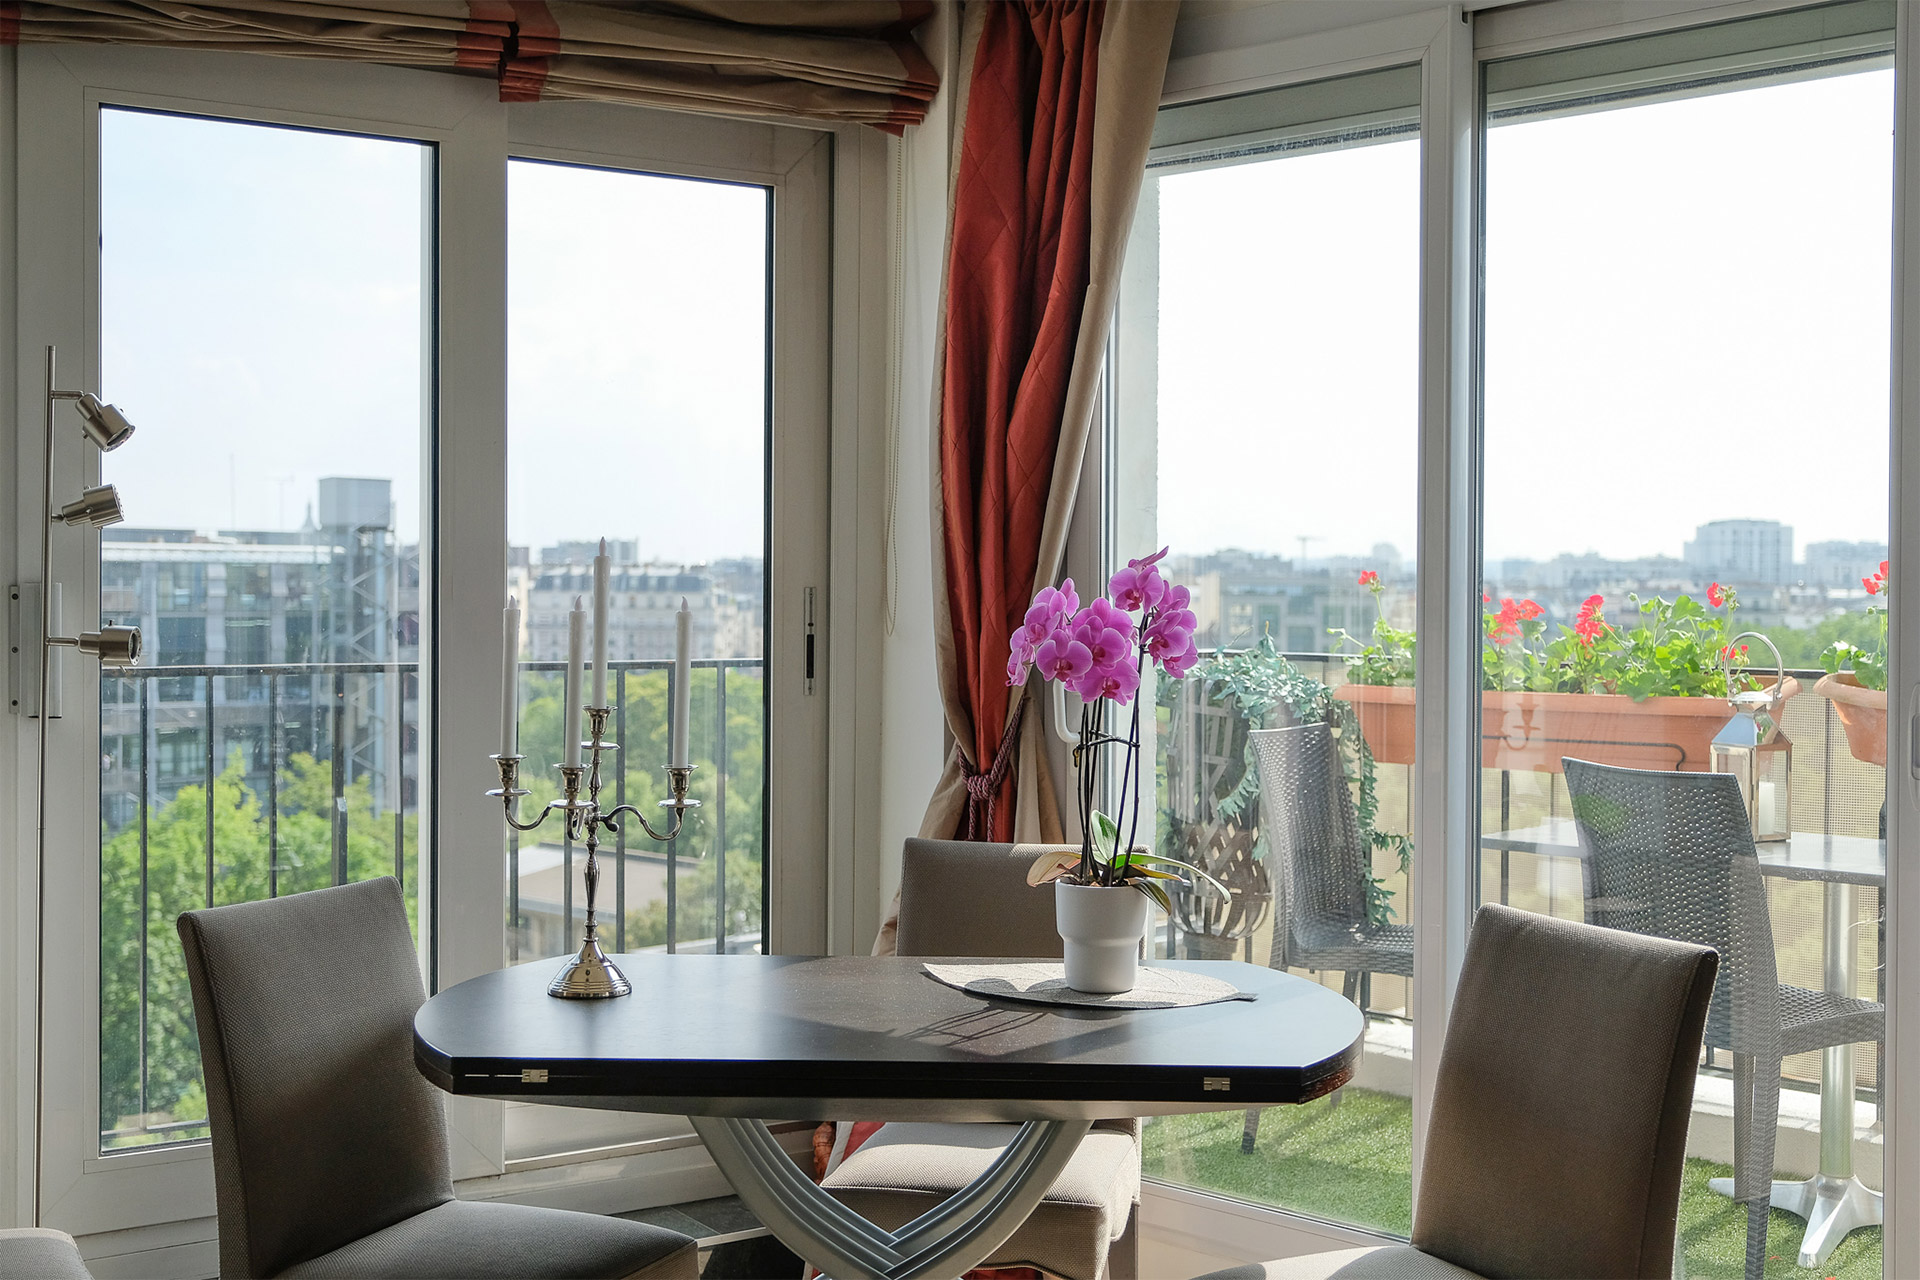 Spectacular views from the dining table at the Bordeneuve Paris Perfect vacation rental